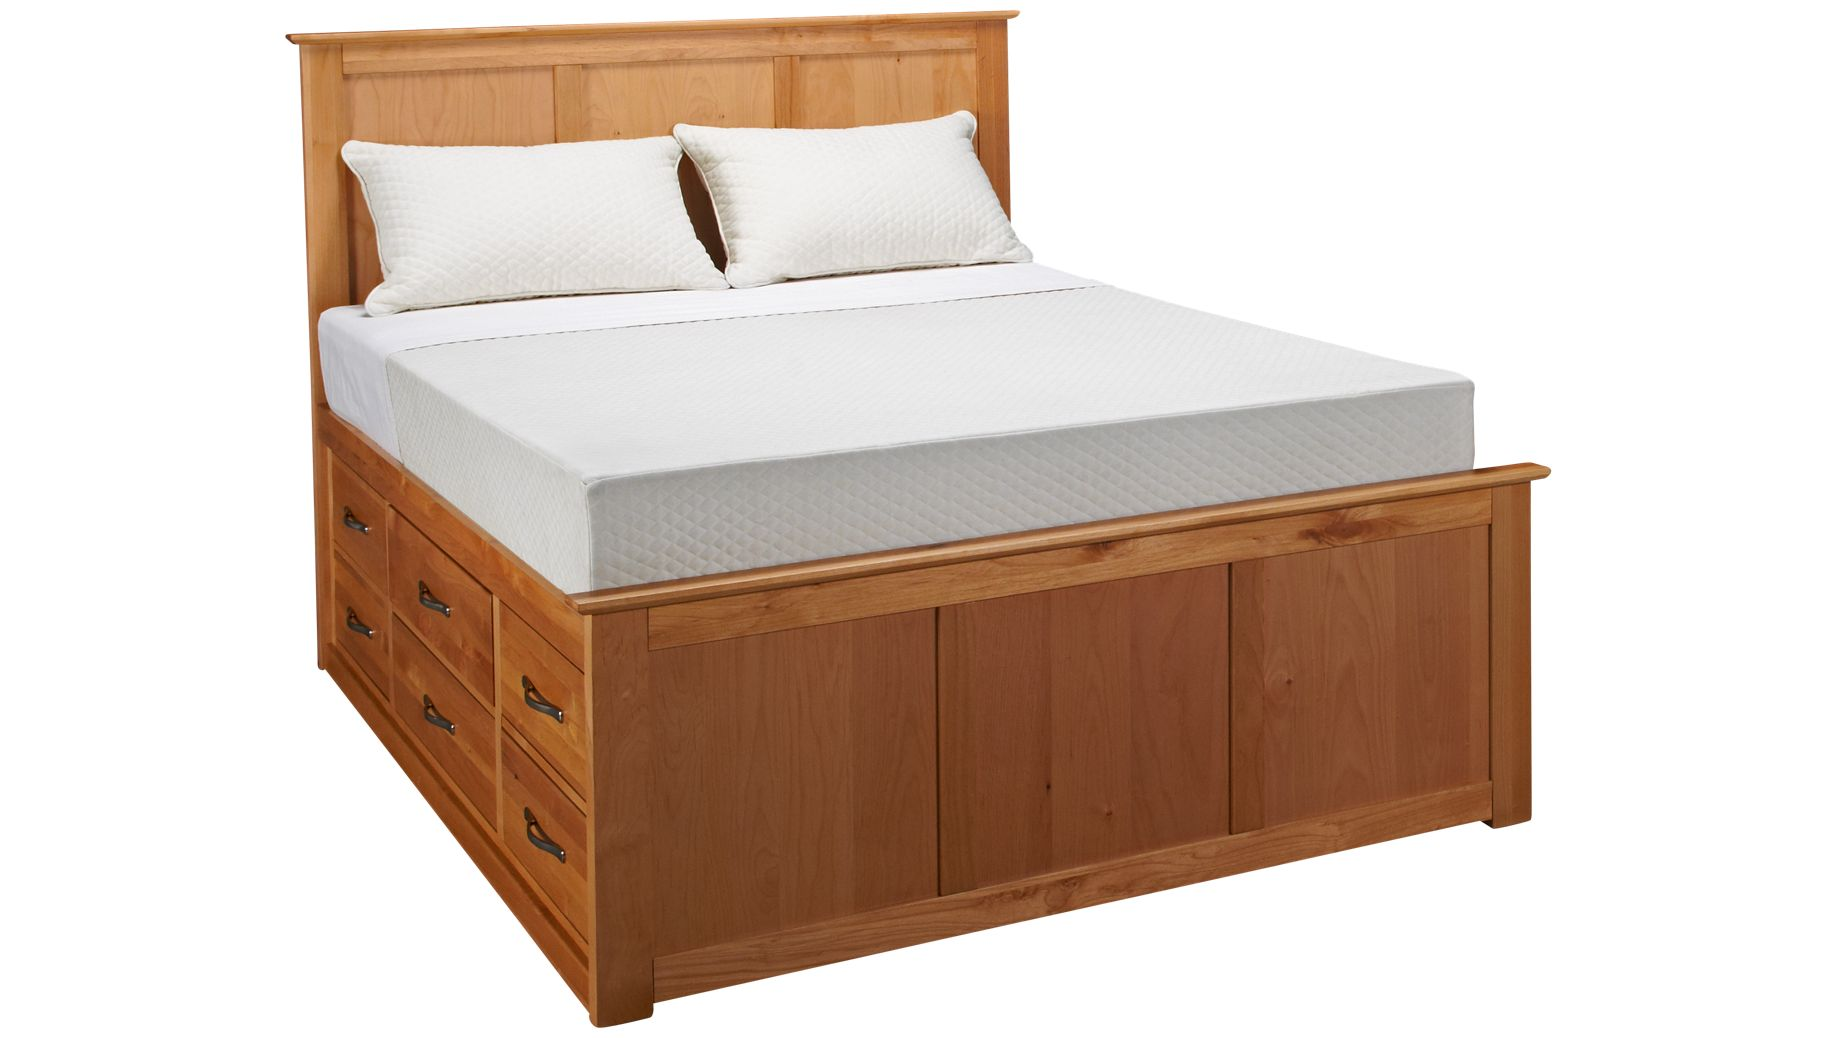 Drawers For Under Bed Mastercraft Urban Home Mastercraft Urban Home Queen Pedestal Bed